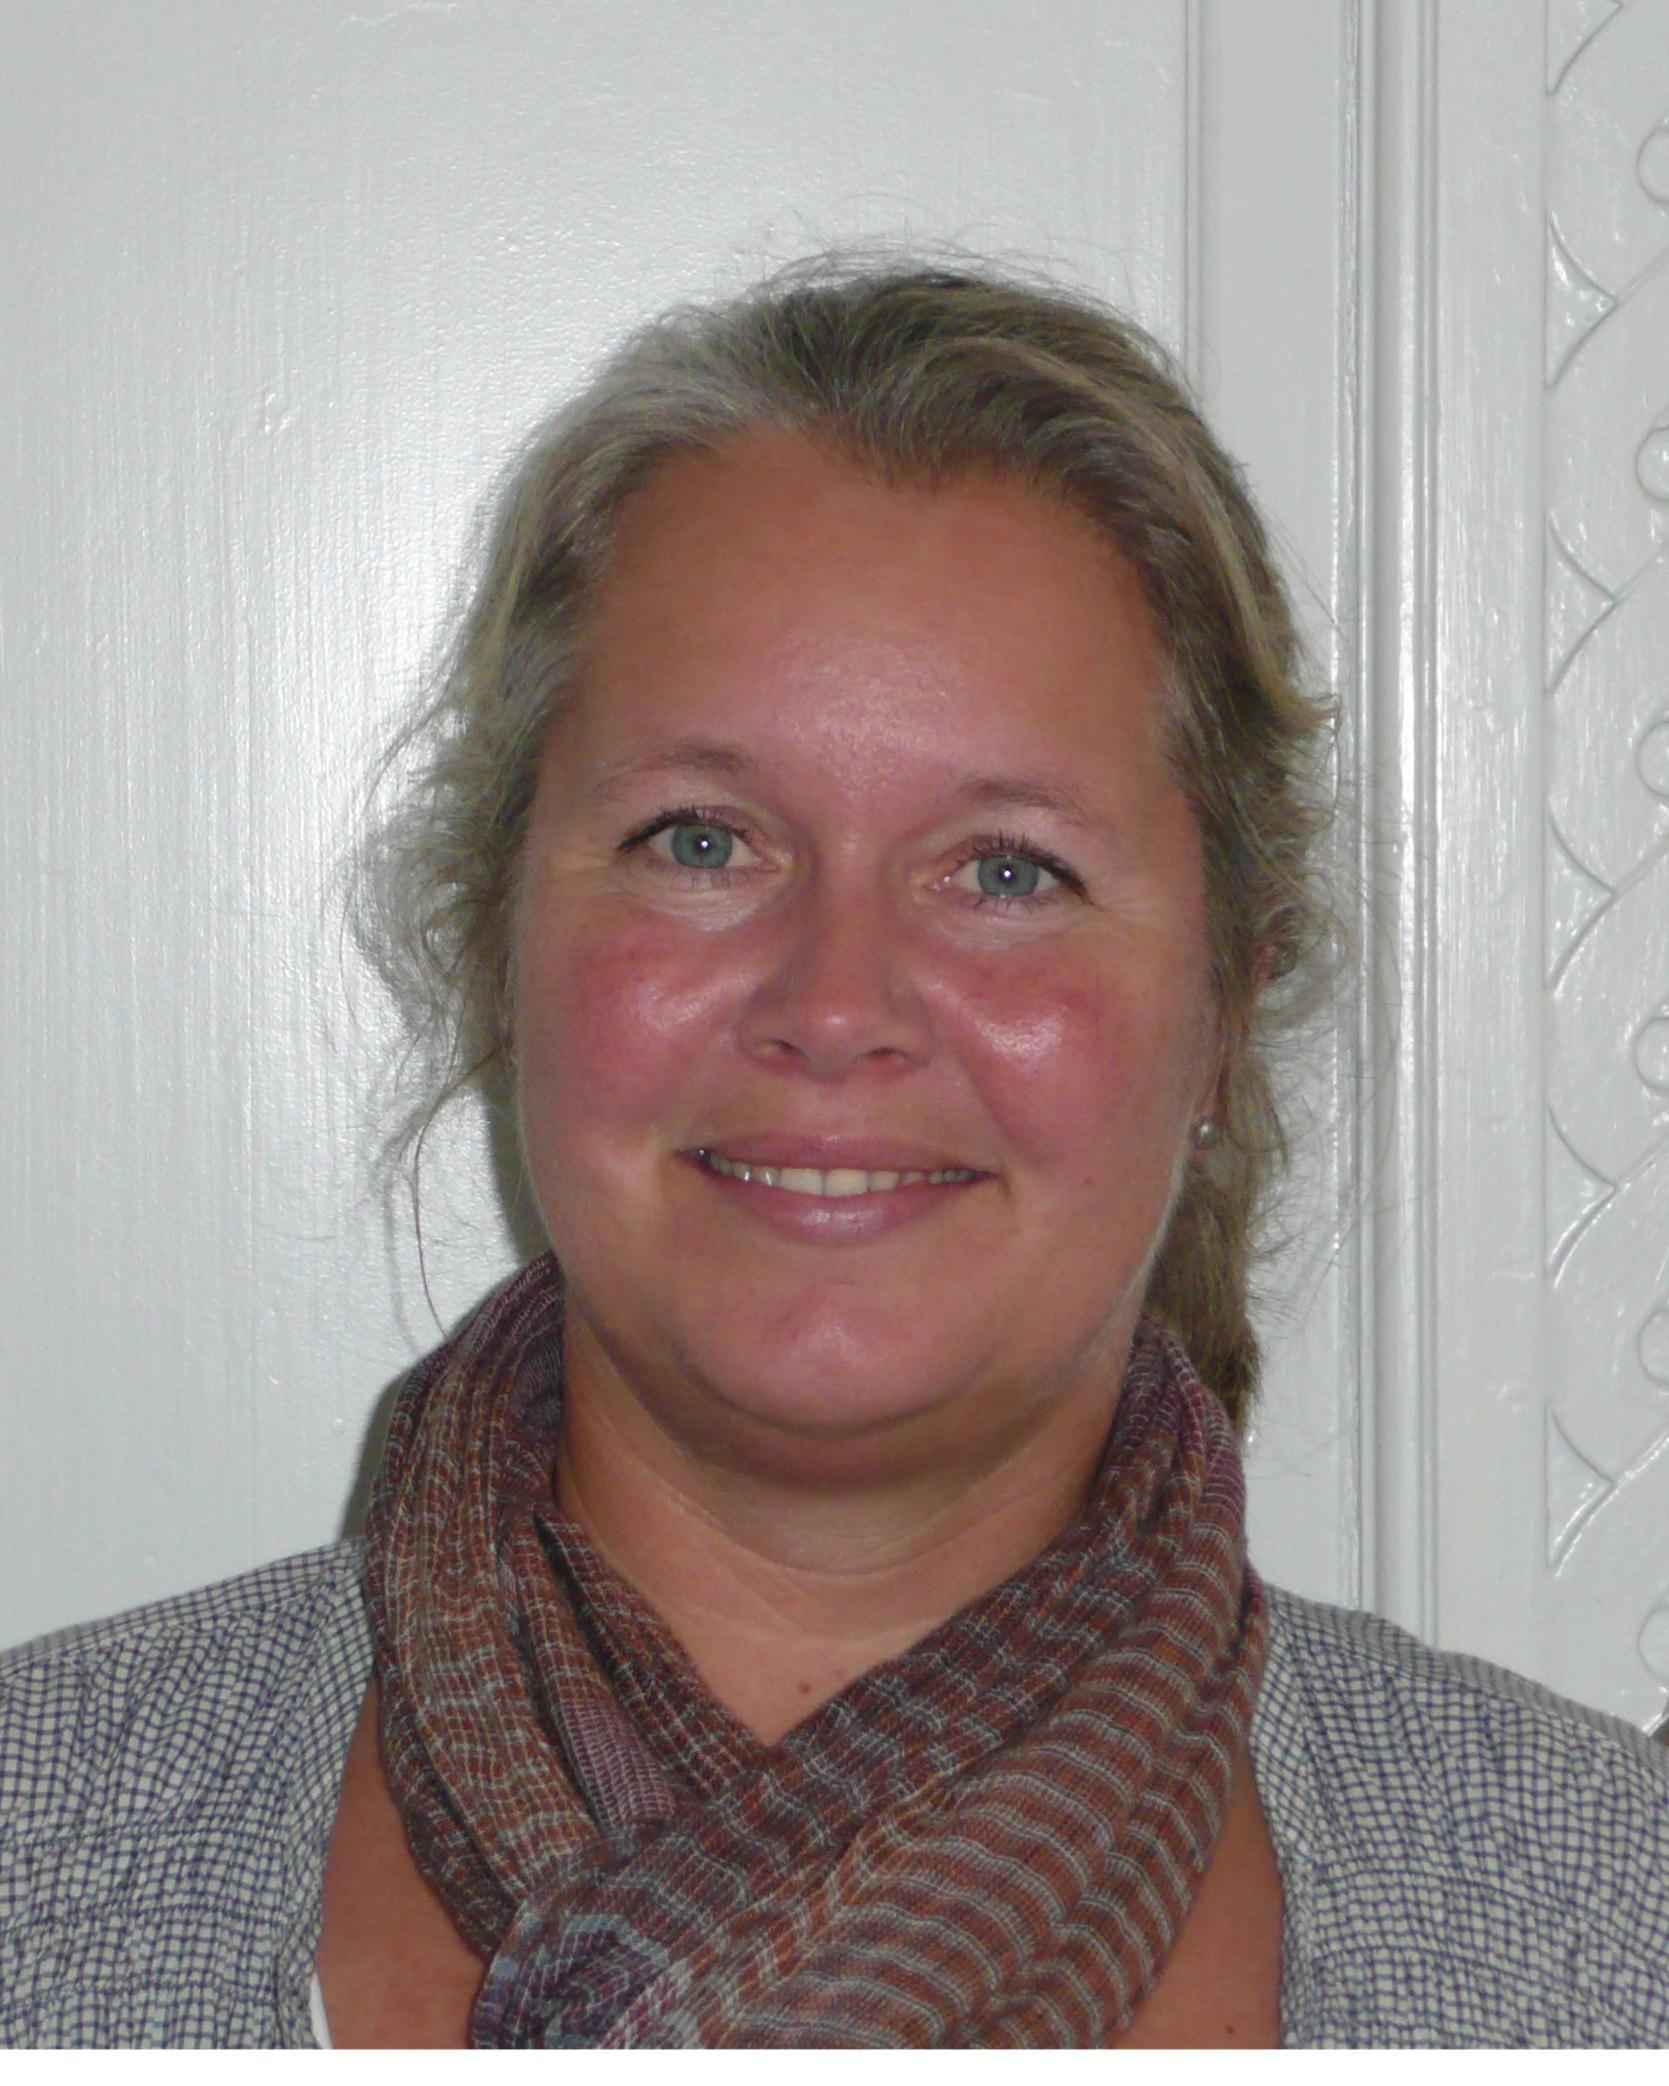 Photo of Birgitta Schiørring Madsen